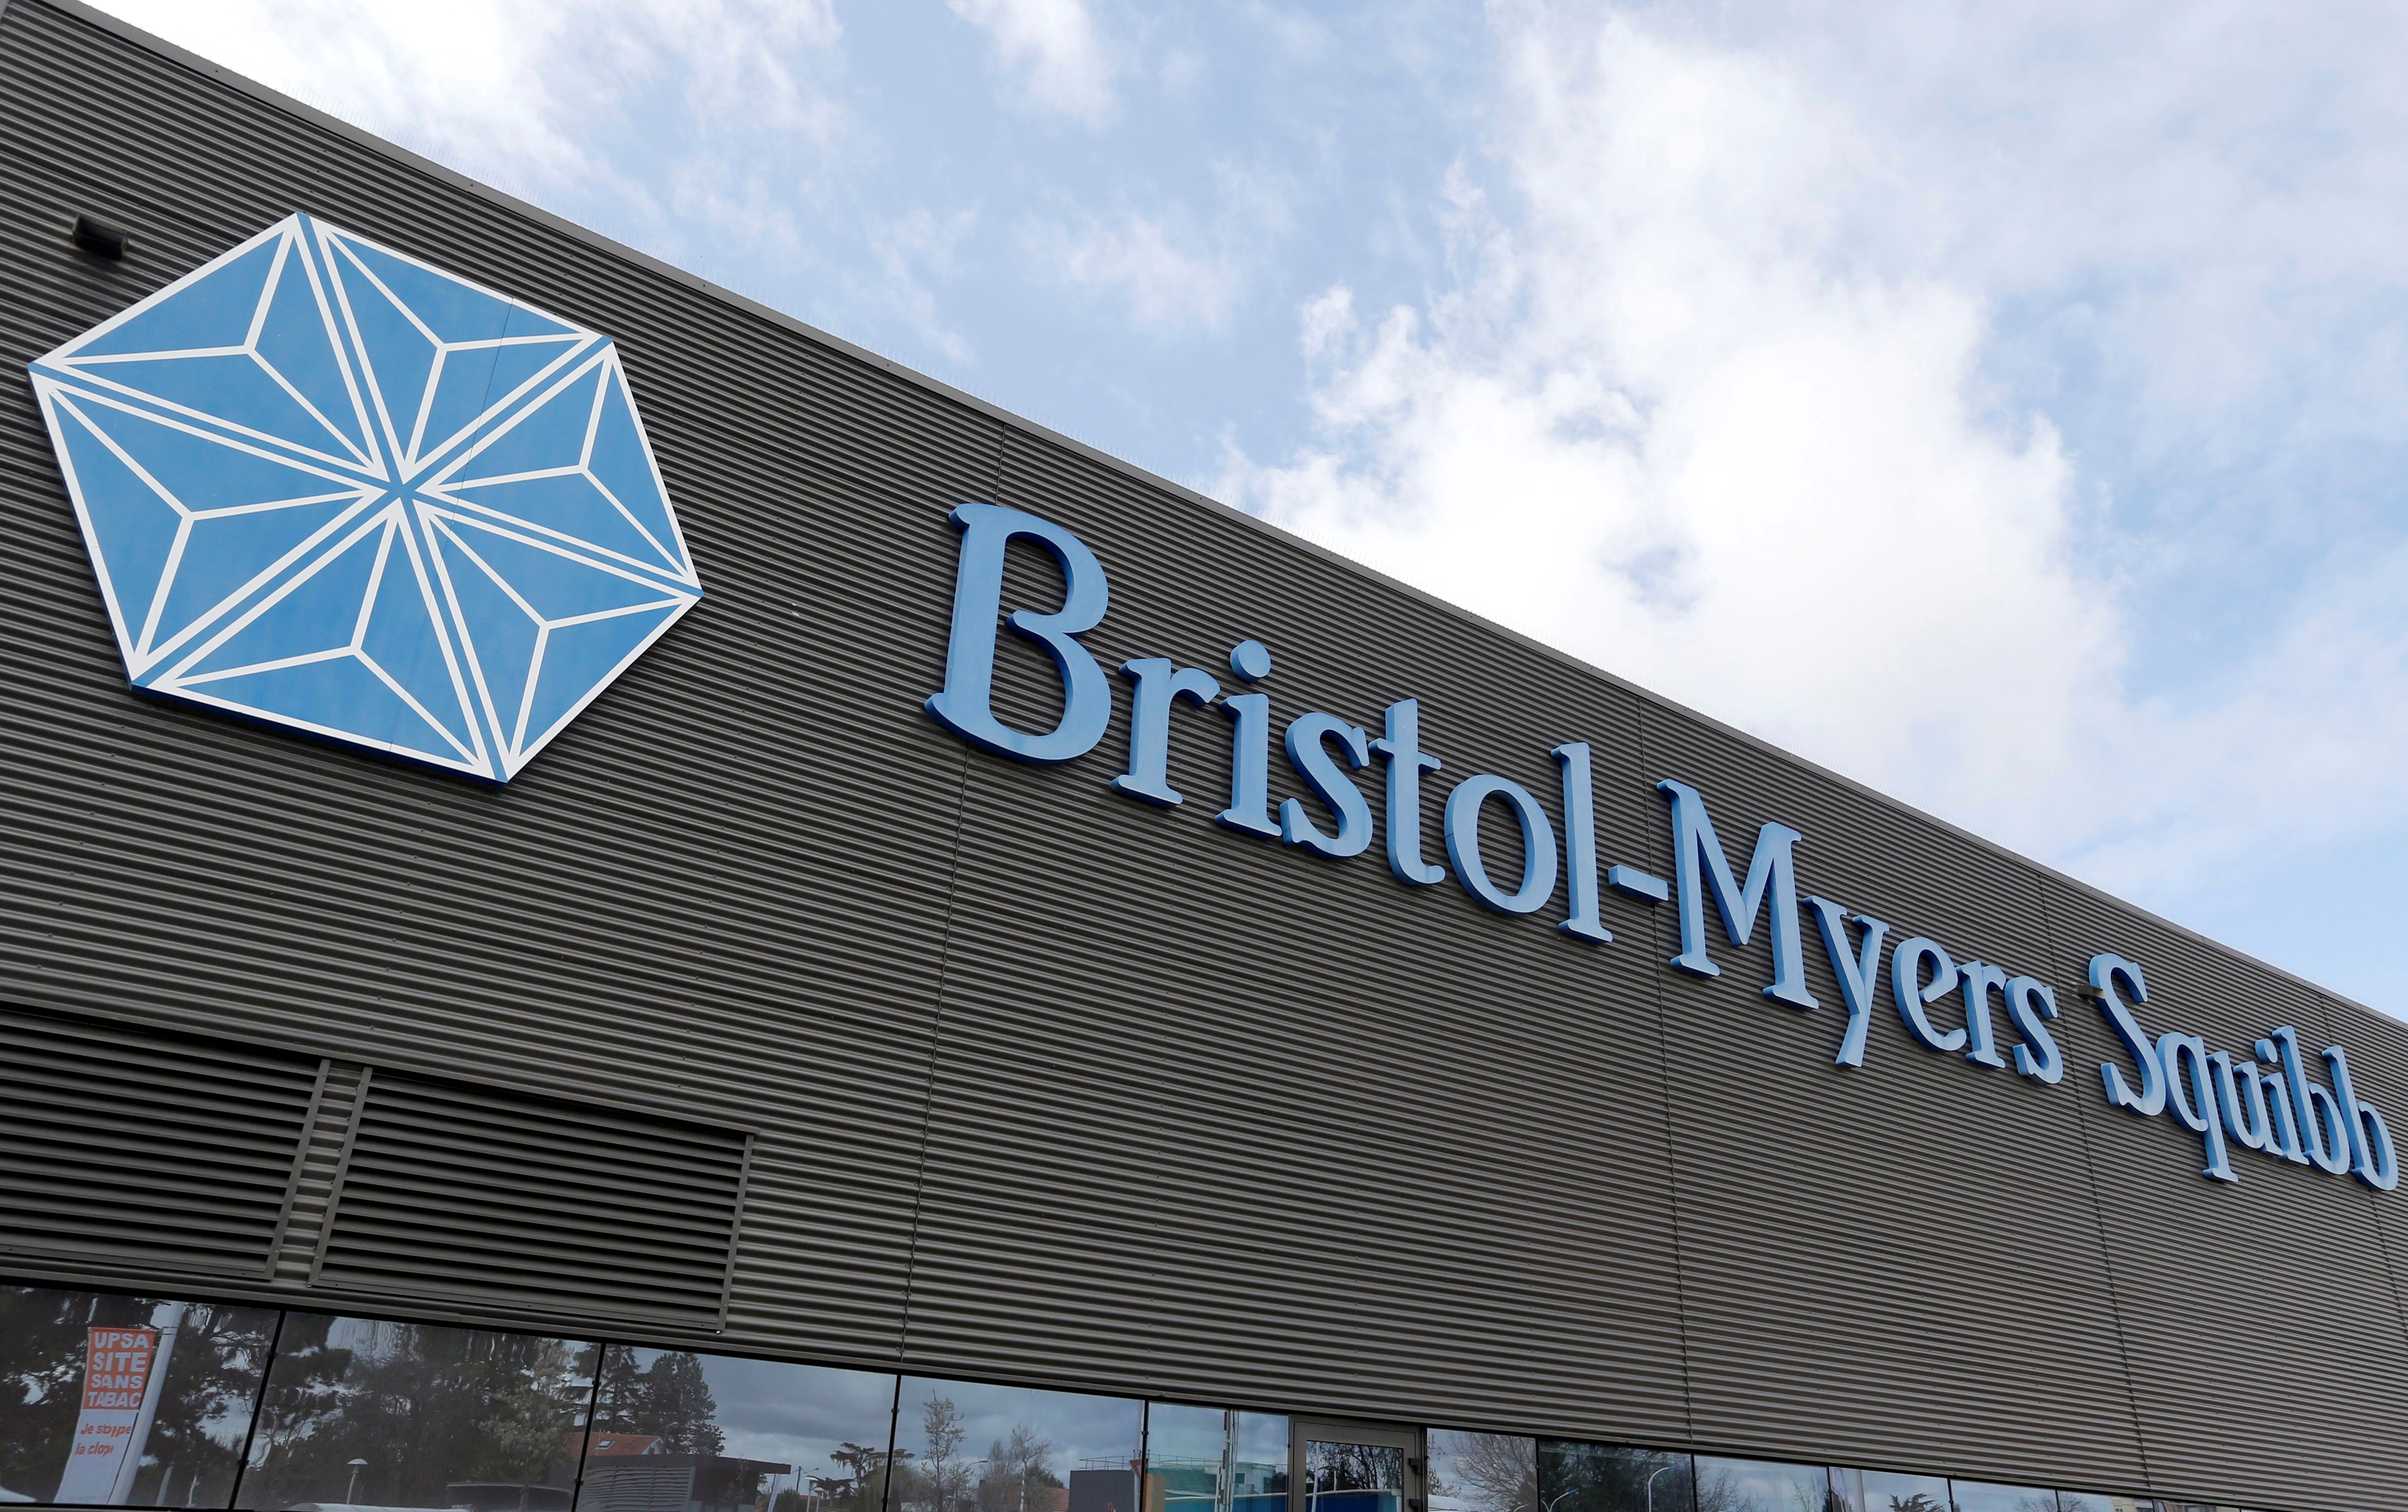 Logo of global biopharmaceutical company Bristol-Myers Squibb is pictured at the headquarters in Le Passage, near Agen, France March 29, 2018. REUTERS/Regis Duvignau/File Photo